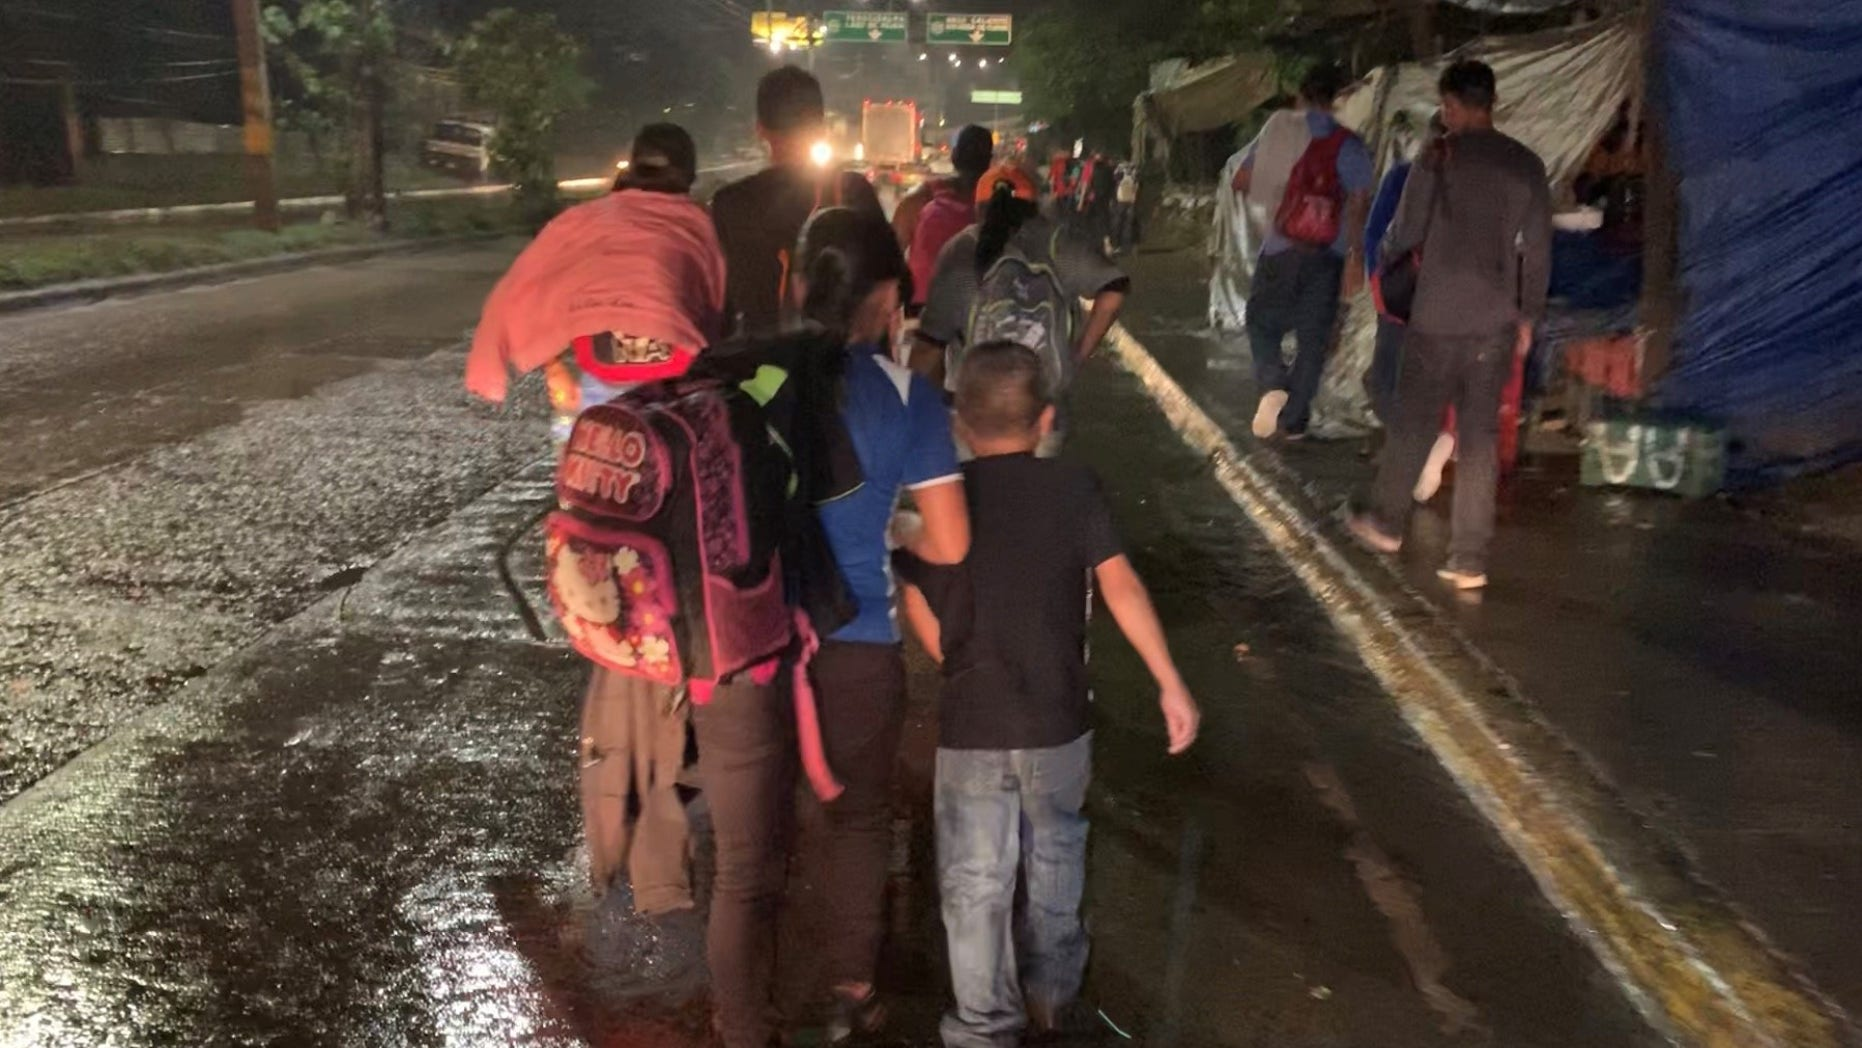 A new caravan left from a bus stop in Honduras late Monday night.